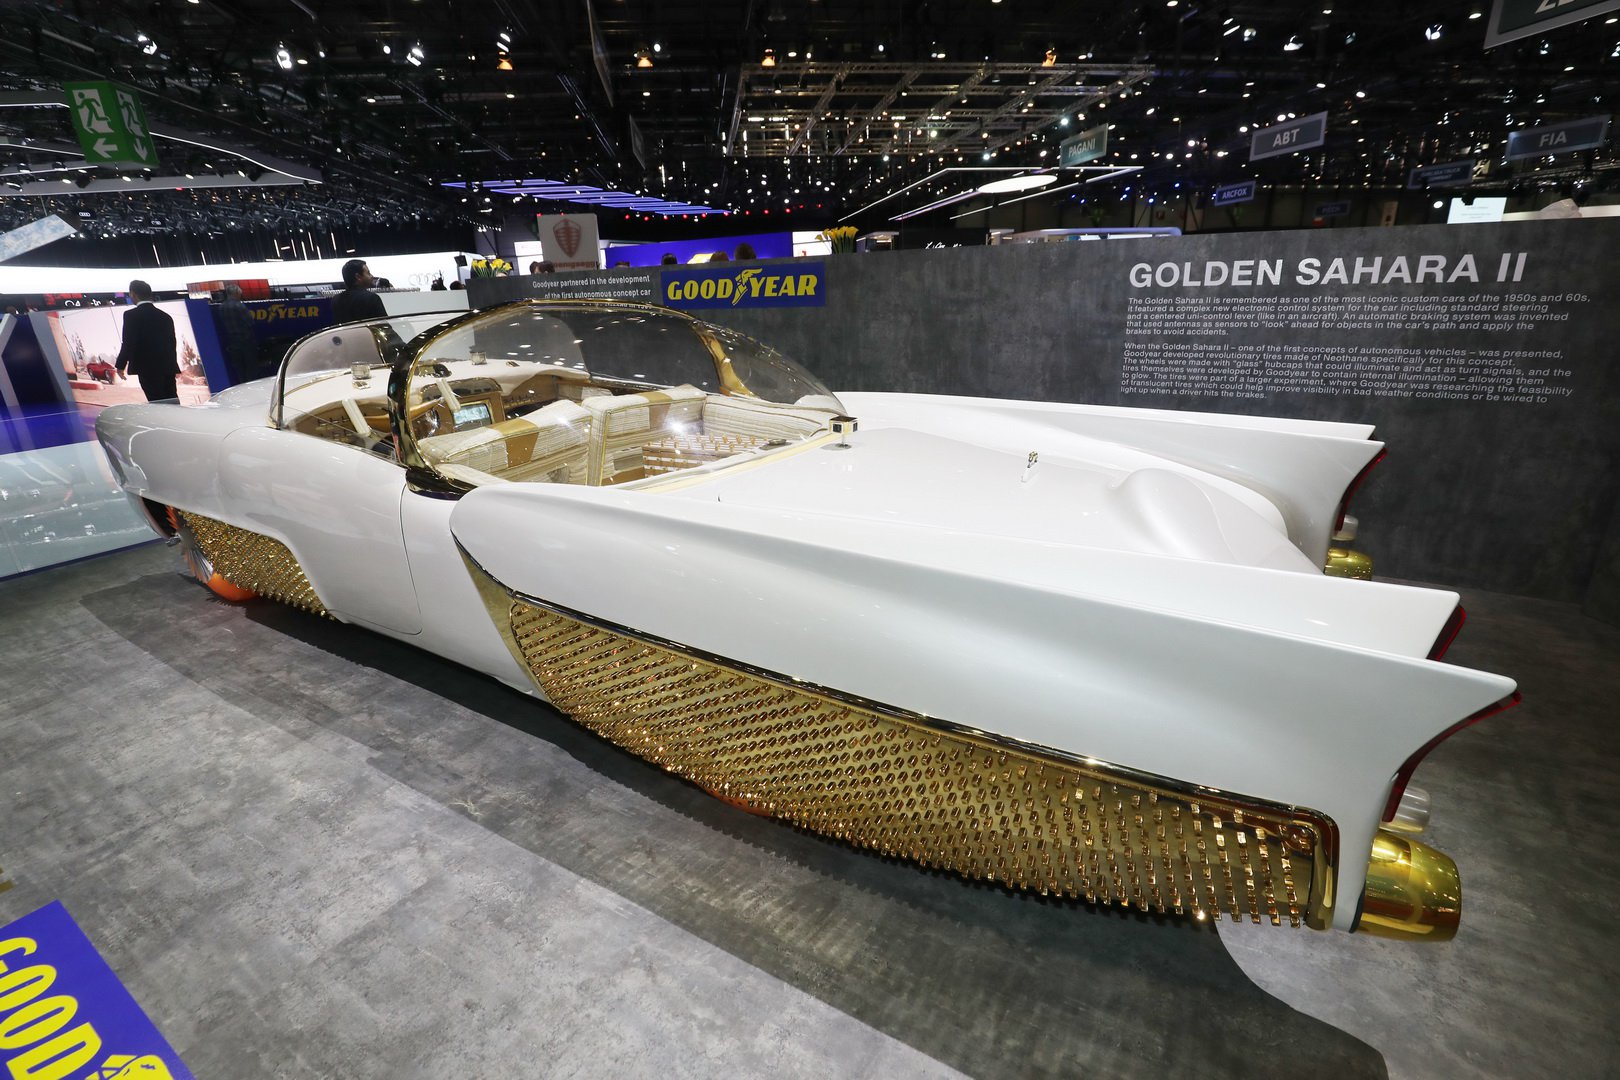 Goodyear and Klairmont Kollections have come to this year's Geneva show with quite an ace up their sleeve: a unique retro car called the Golden Sahara II